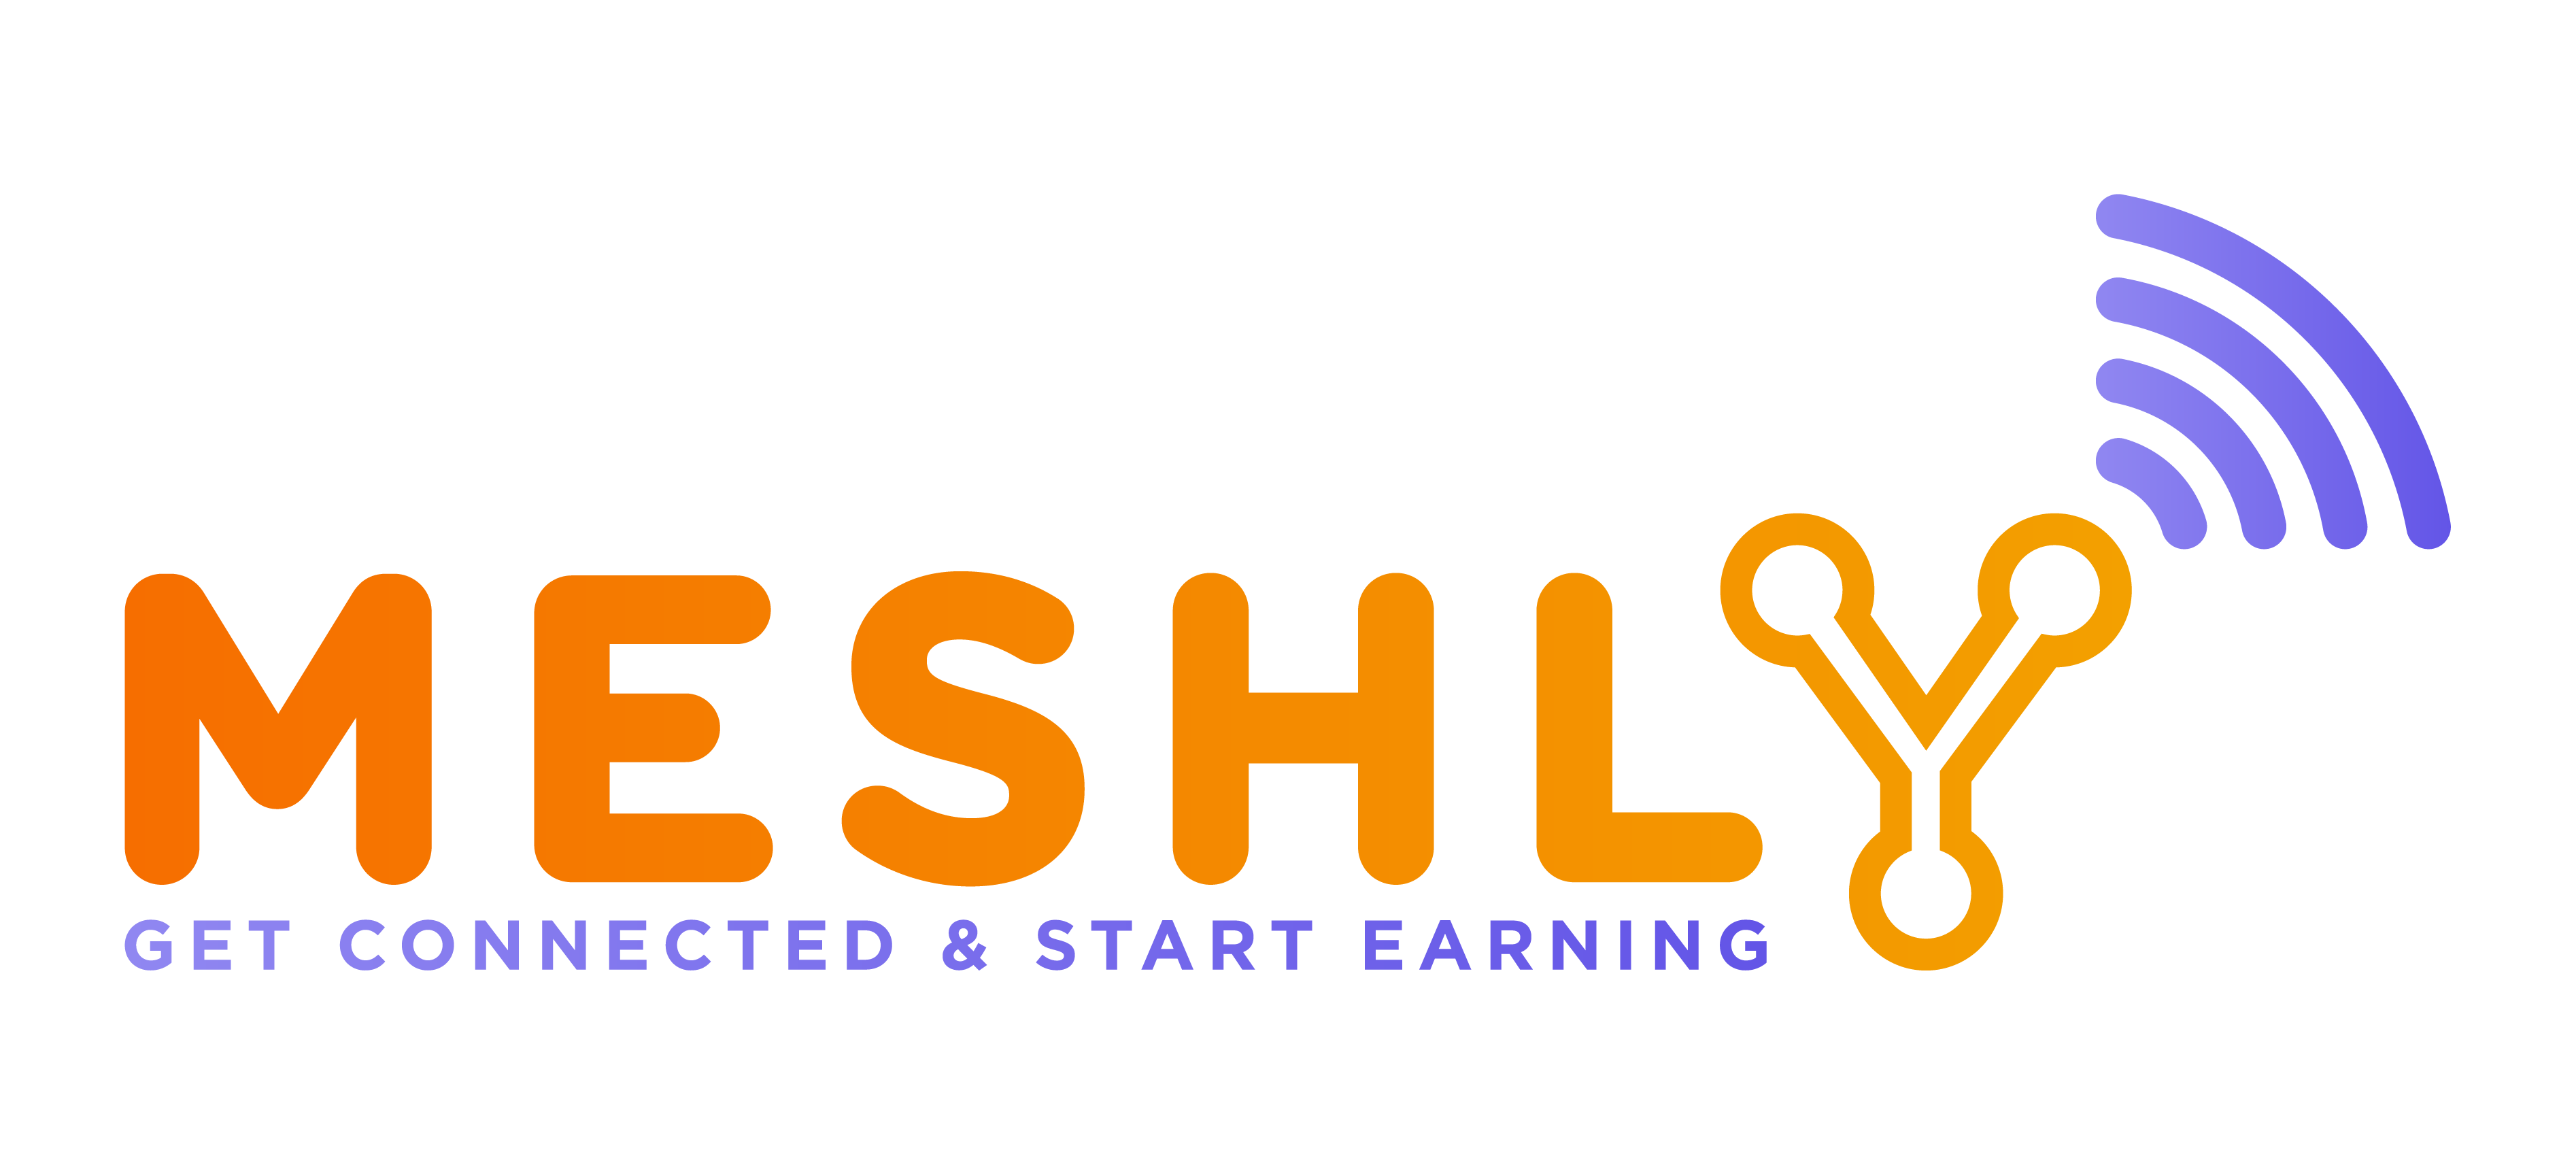 Meshly Logo Transparent Background